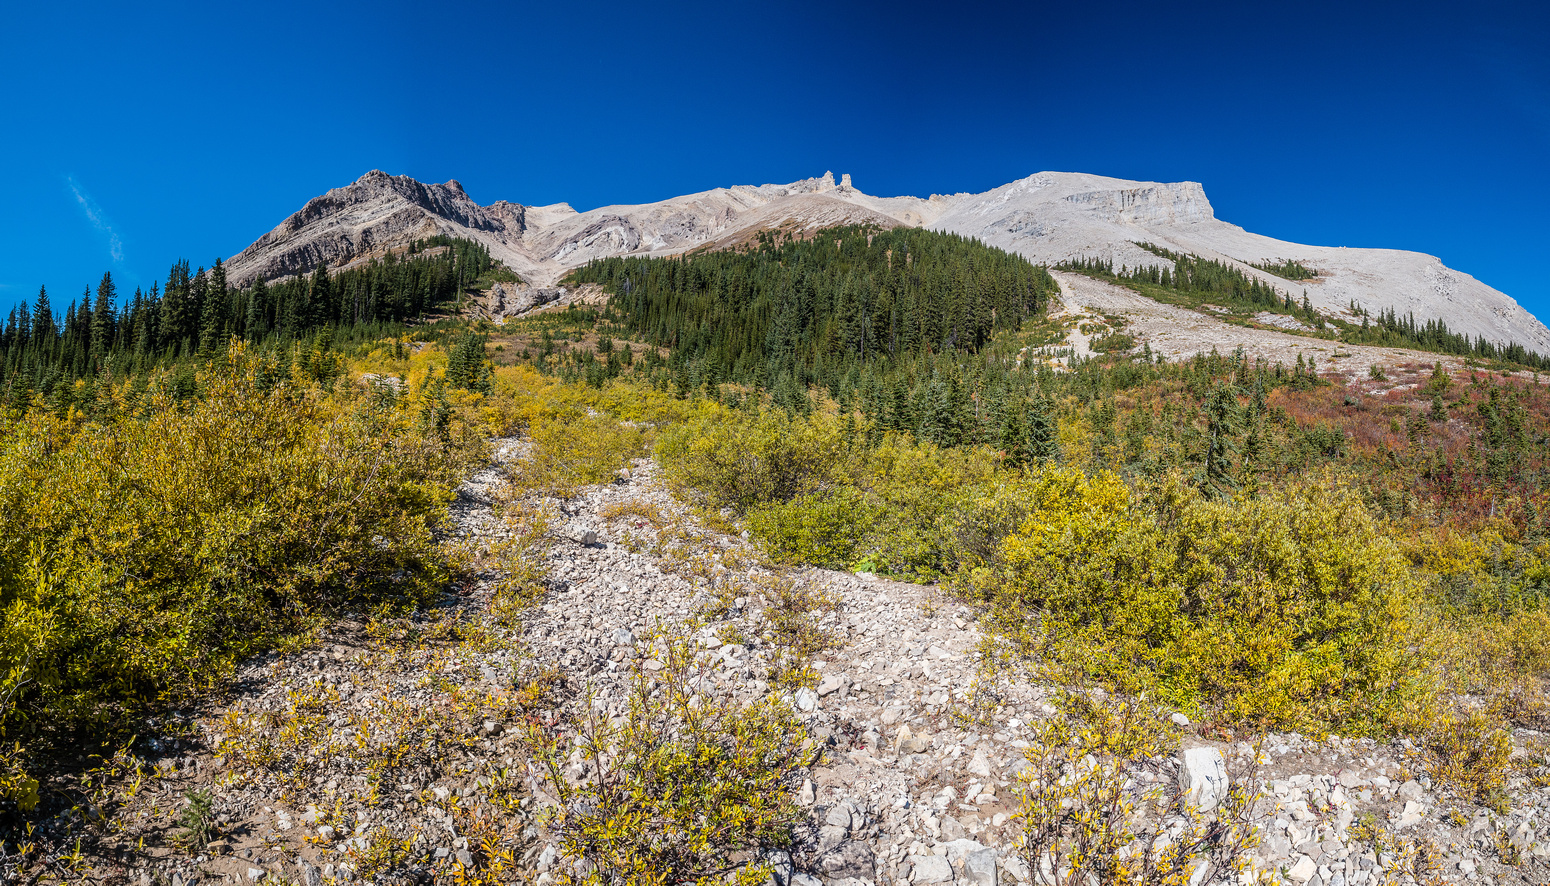 Looking back up at the Pipestone massif from the lower SE gully.